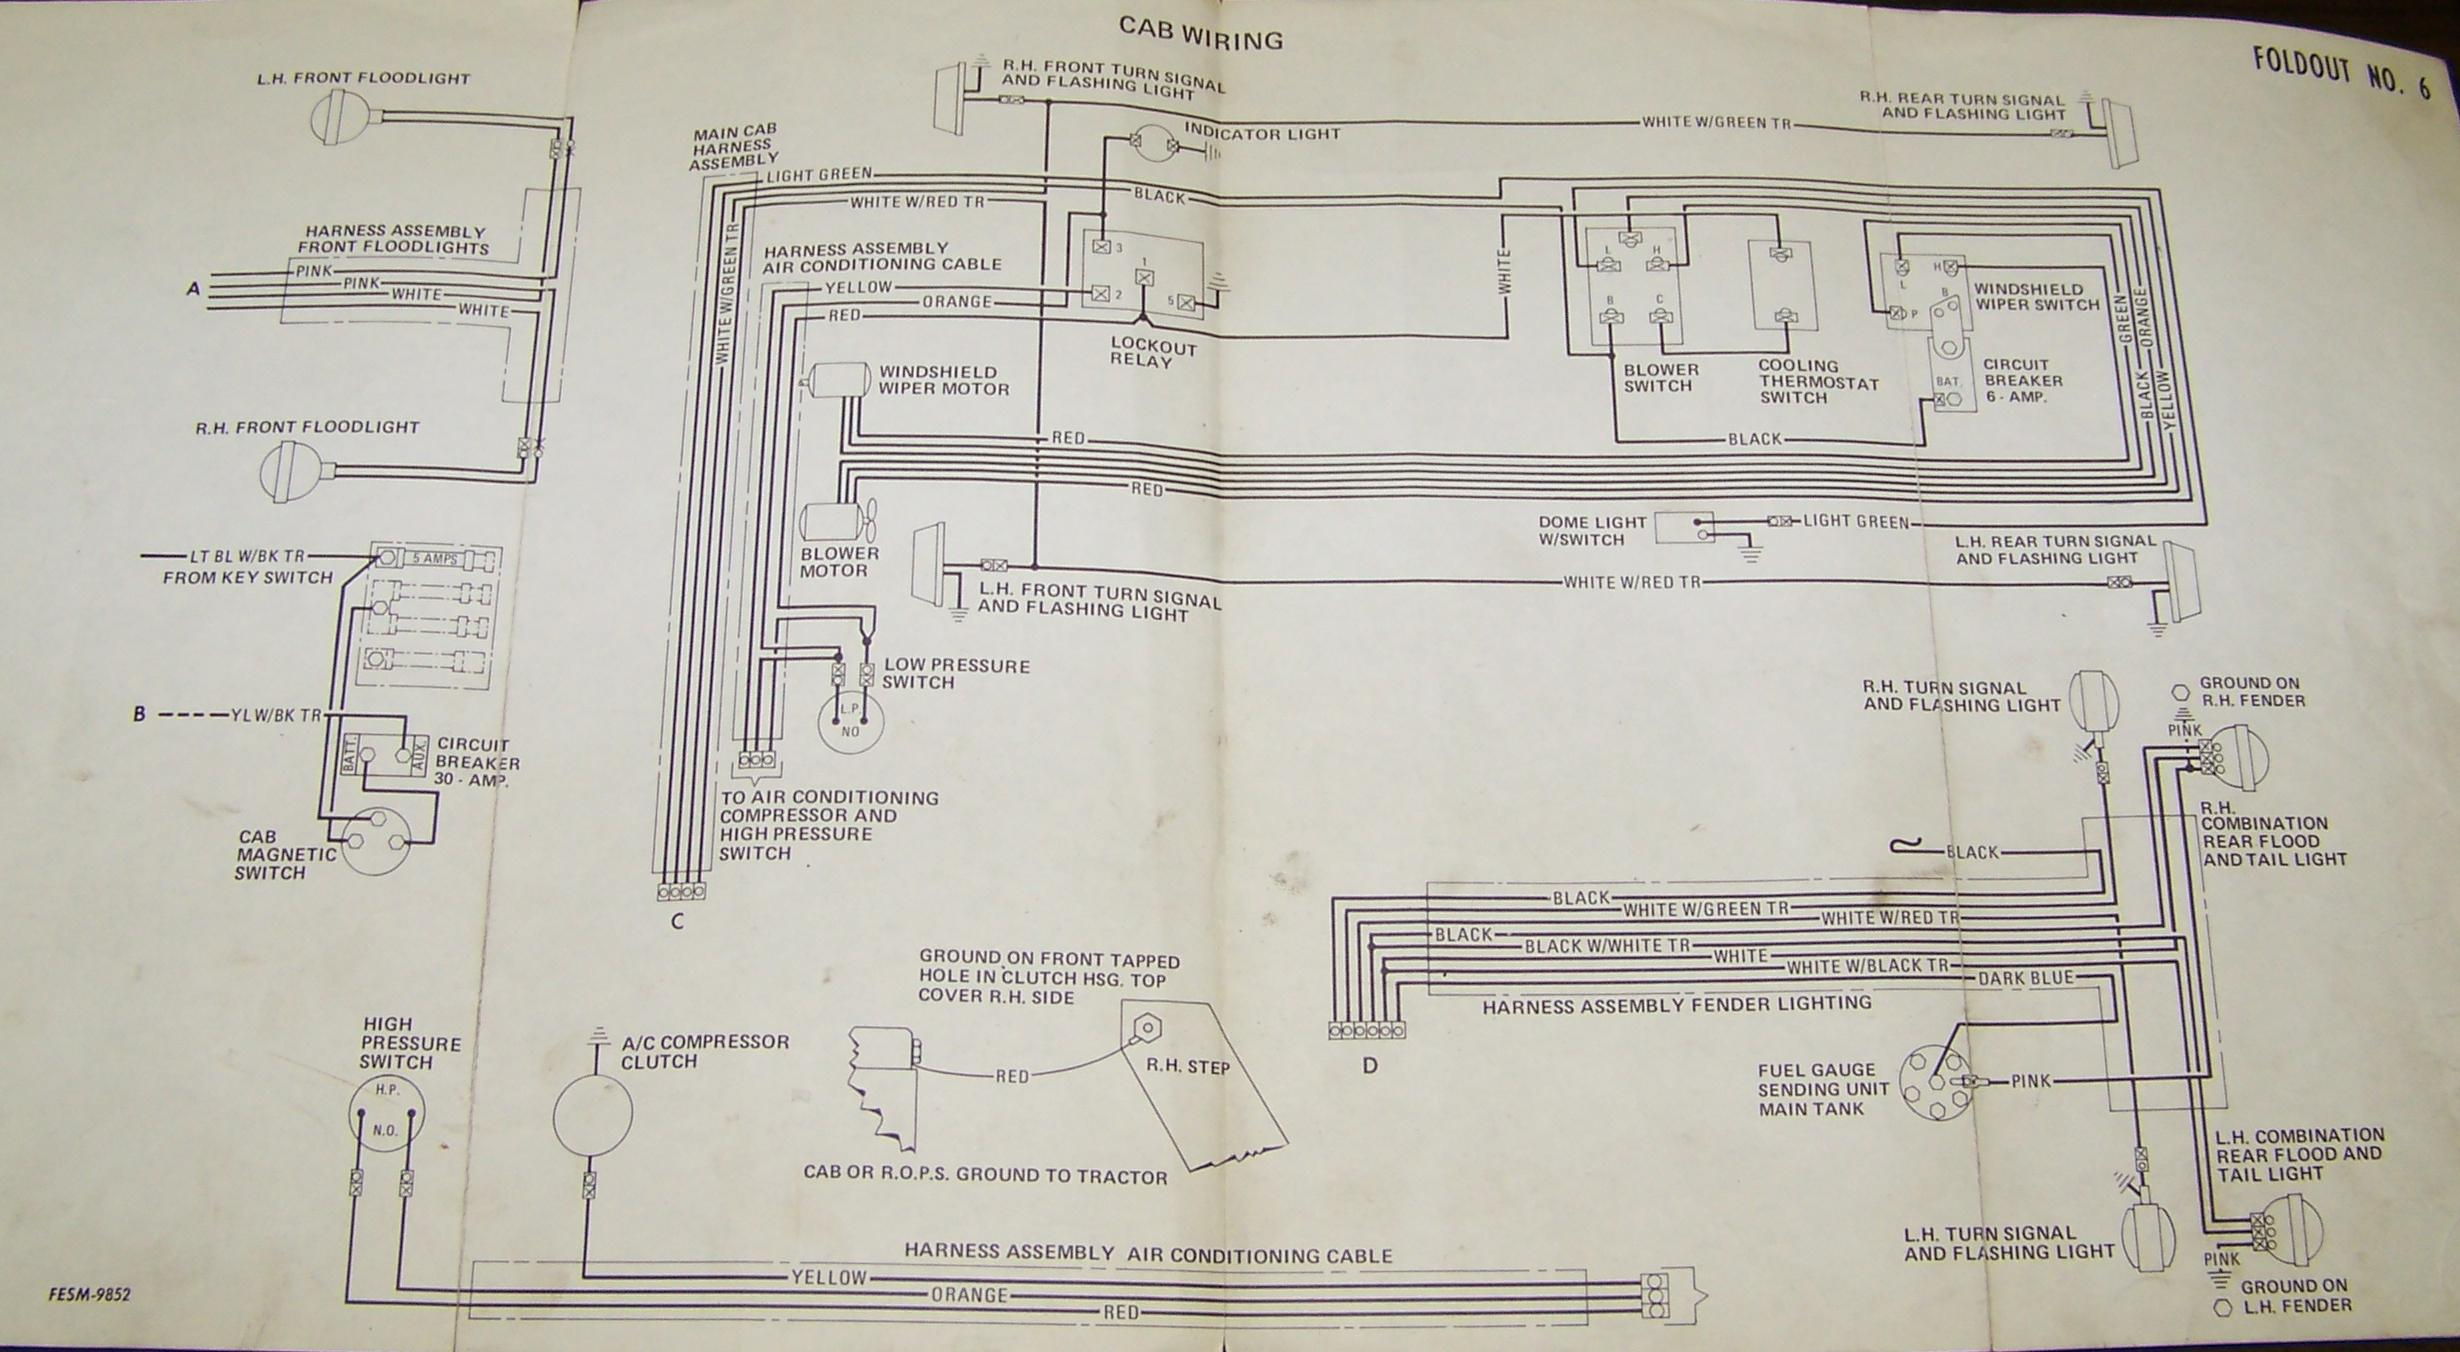 Carter Gruenewald Co Inc Ihfarmall Tractor Electrical Wiring. Ih Farmall Tractor Electrical Wiring Diagrams. Wiring. Lp And Turn Signal Wiring Schematic At Scoala.co